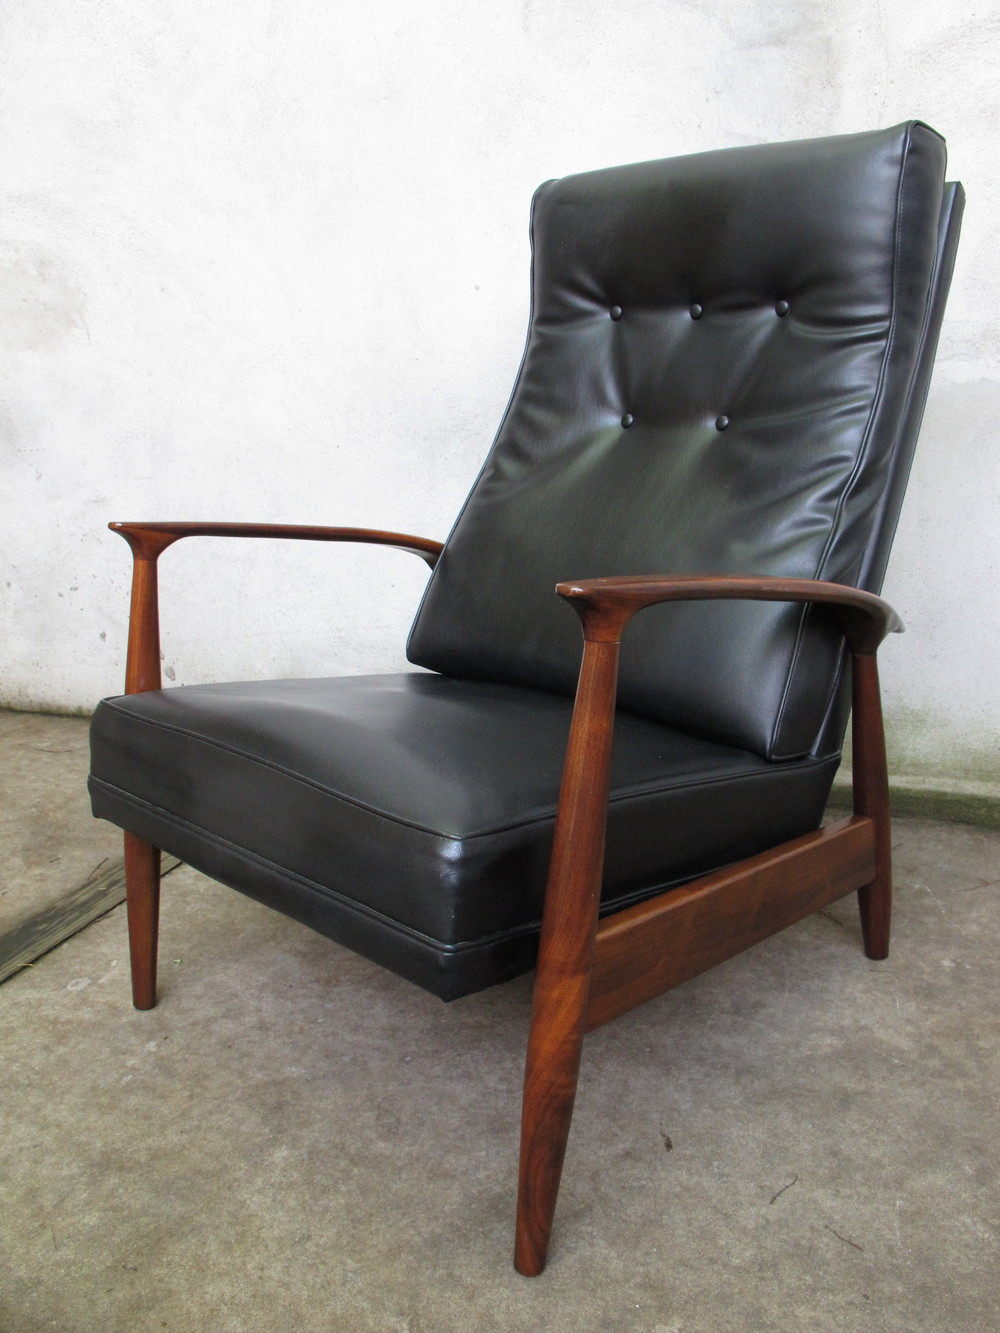 MID CENTURY MILO BAUGHMAN RECLINING LOUNGE CHAIR BY THAYER COGGIN FROM 1966